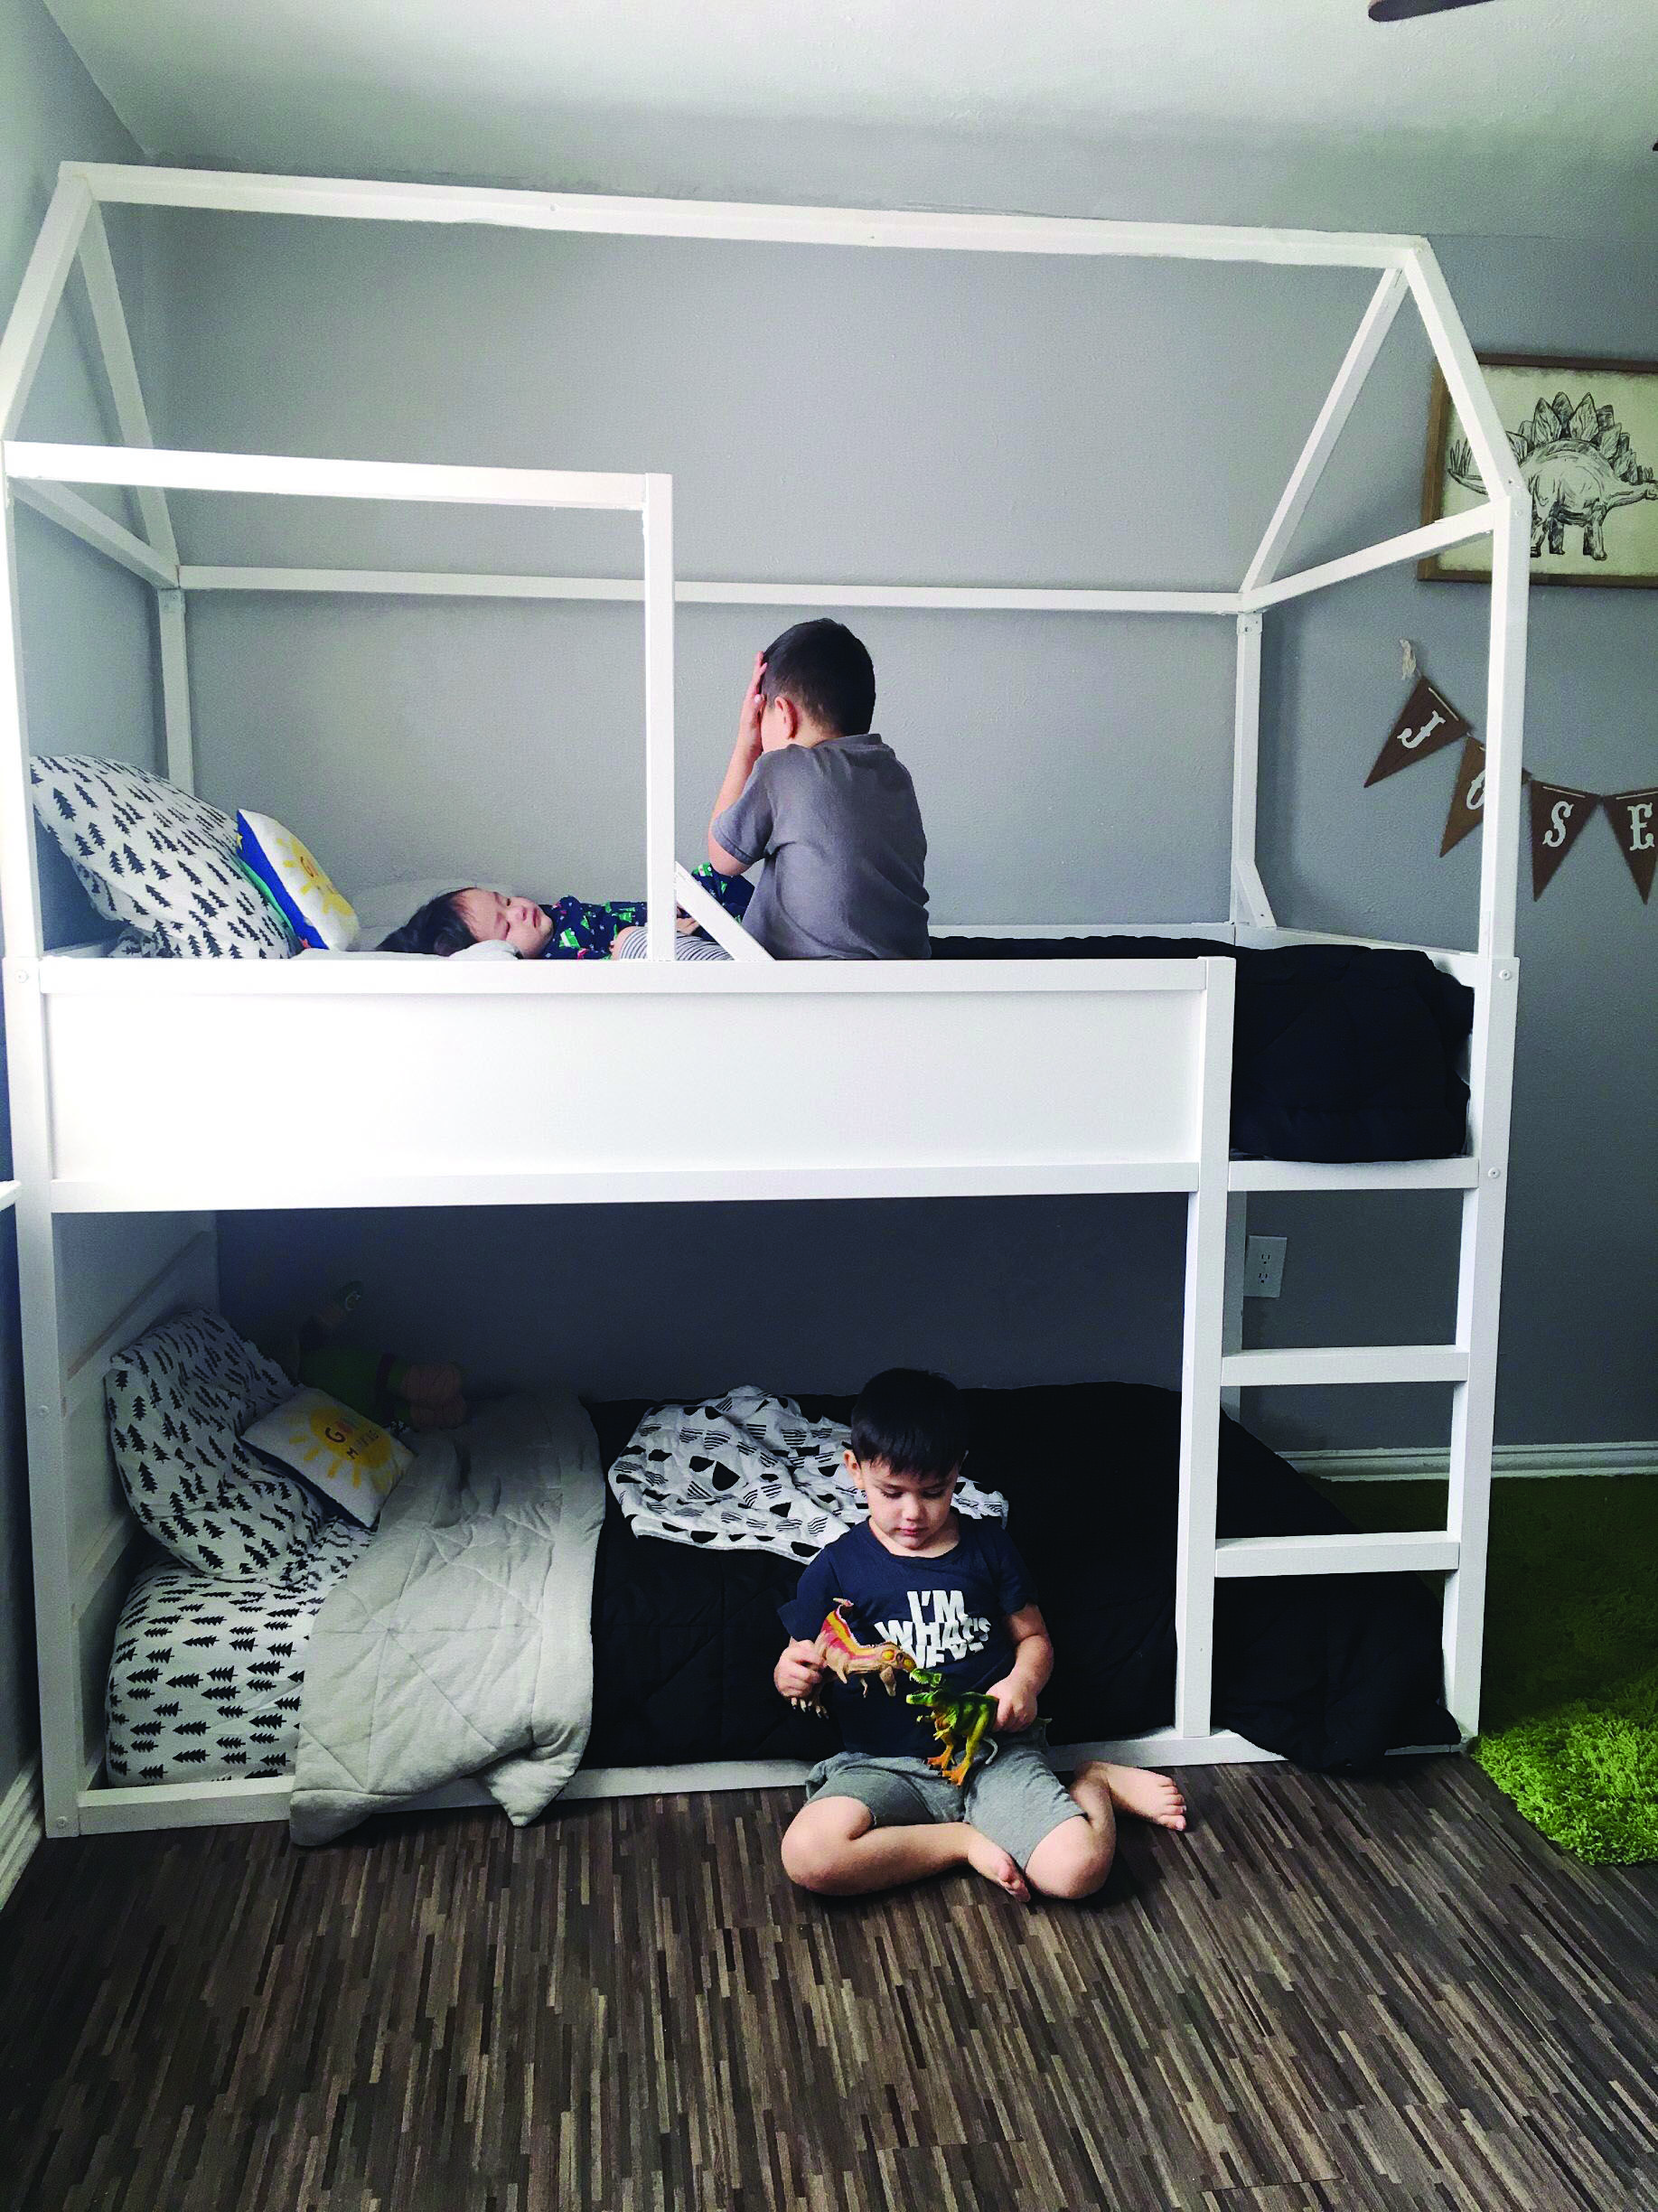 Ikea Bunk Bed Australia Ikea Bunk Beds Other Ikea Bunk Bed Ikea Kids Bed Bunk Beds